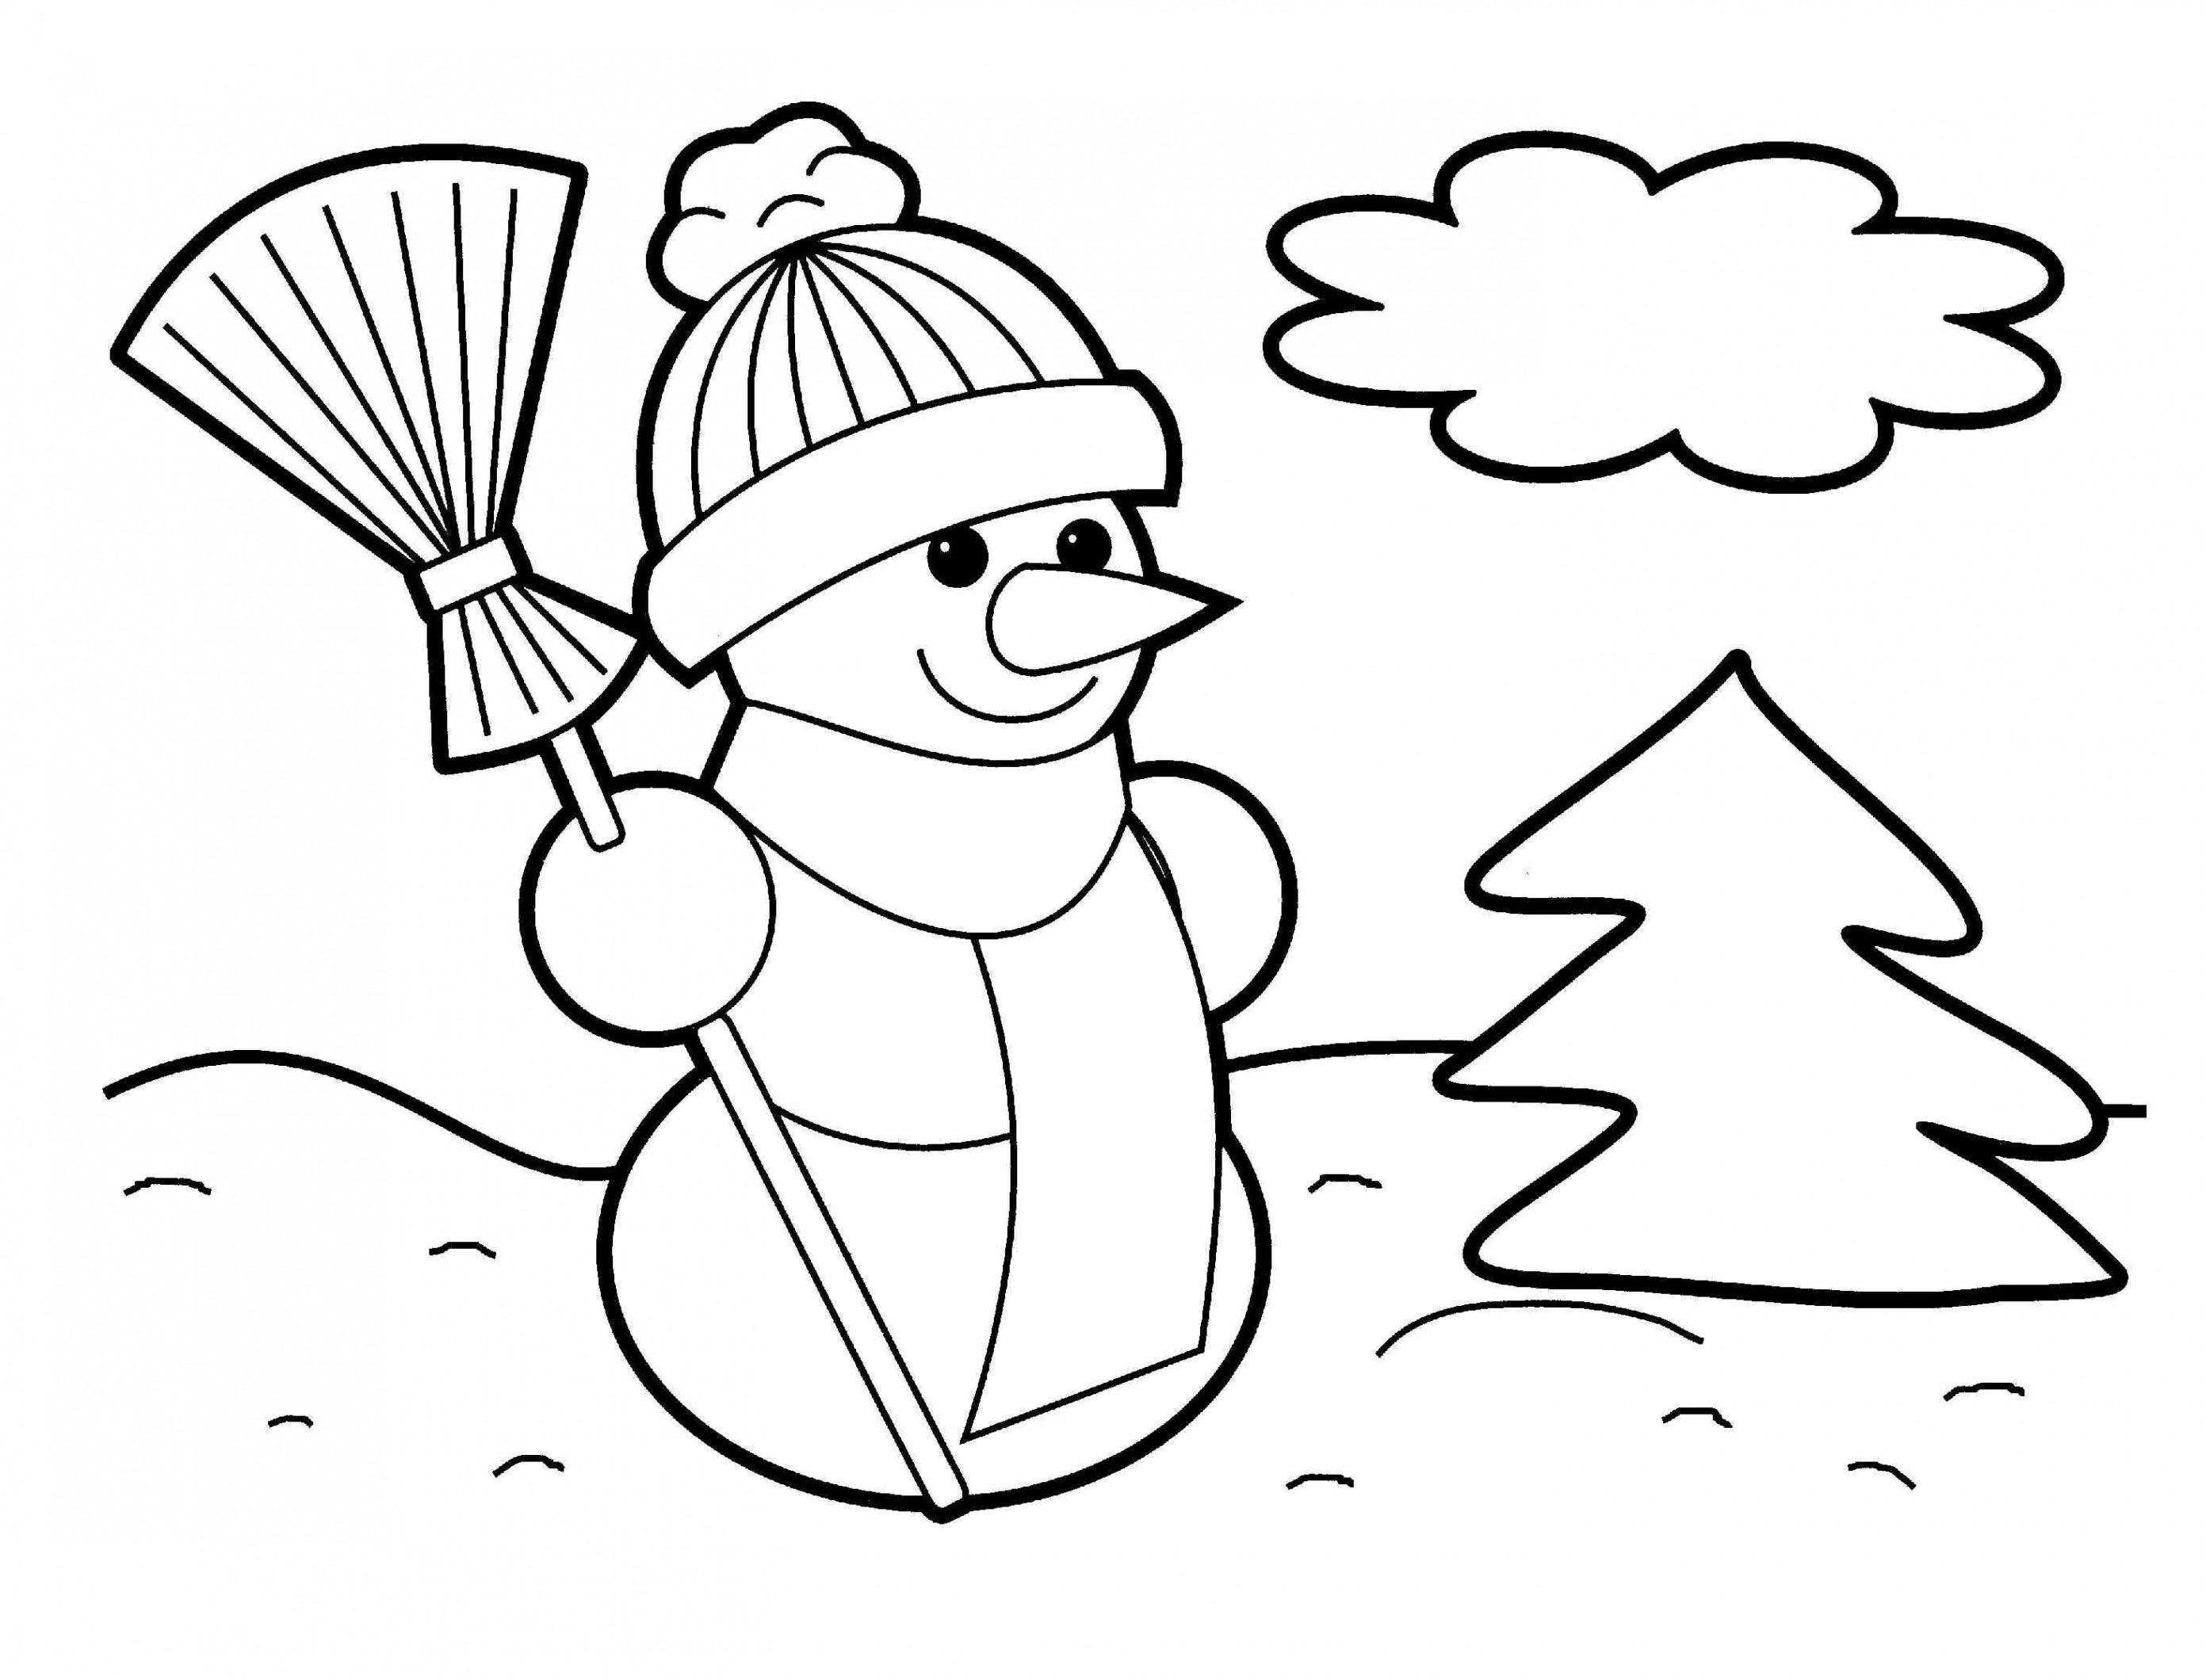 Christmas Coloring Sheets For Elementary With Snowman Pages Kindergarten